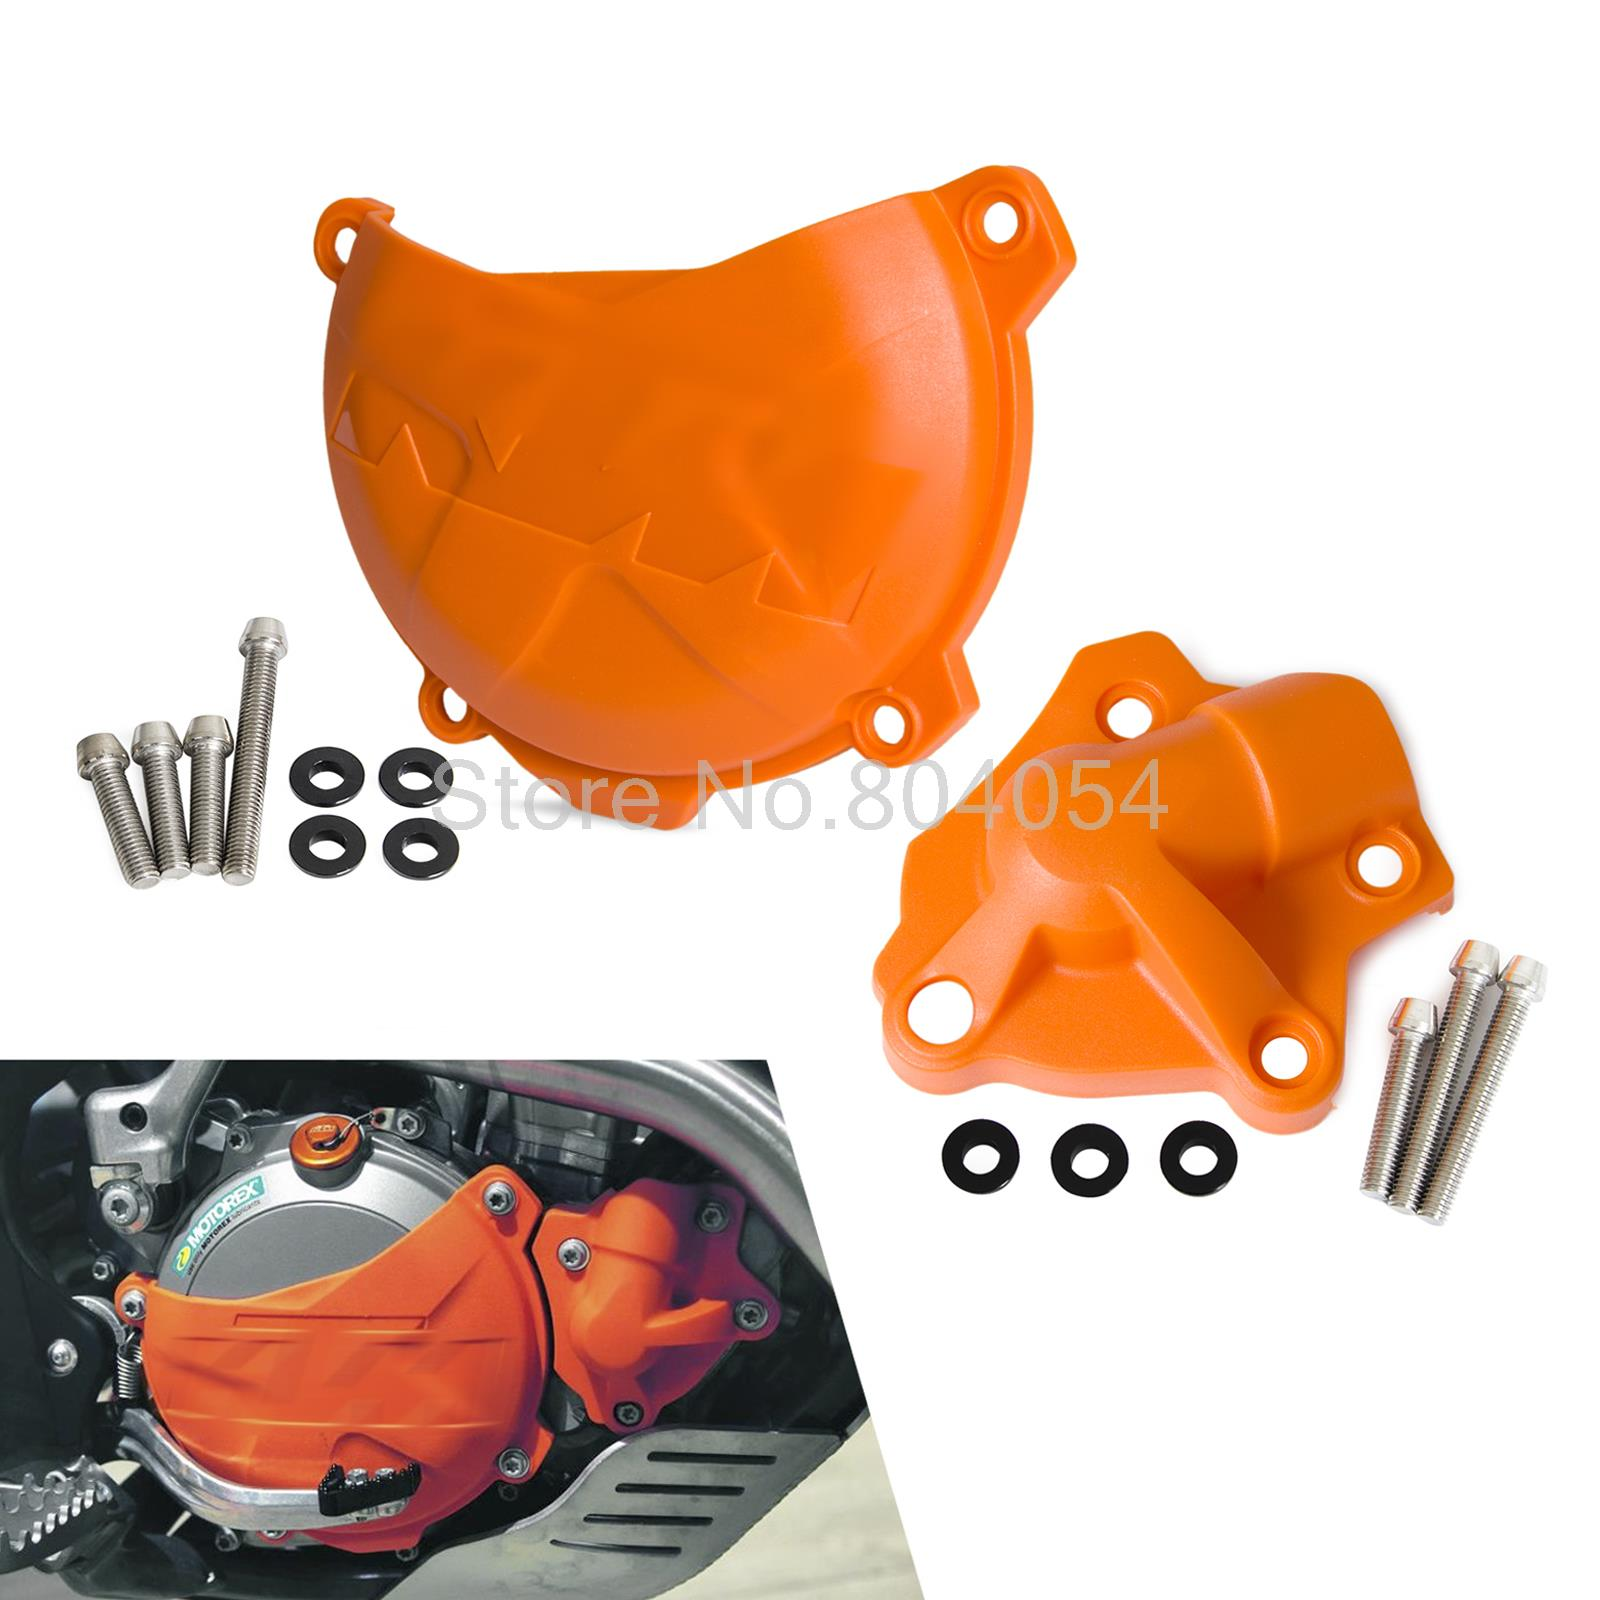 ФОТО Clutch Cover Protection Cover Water Pump Cover Protector for KTM 350 XCF-W 2013-2016